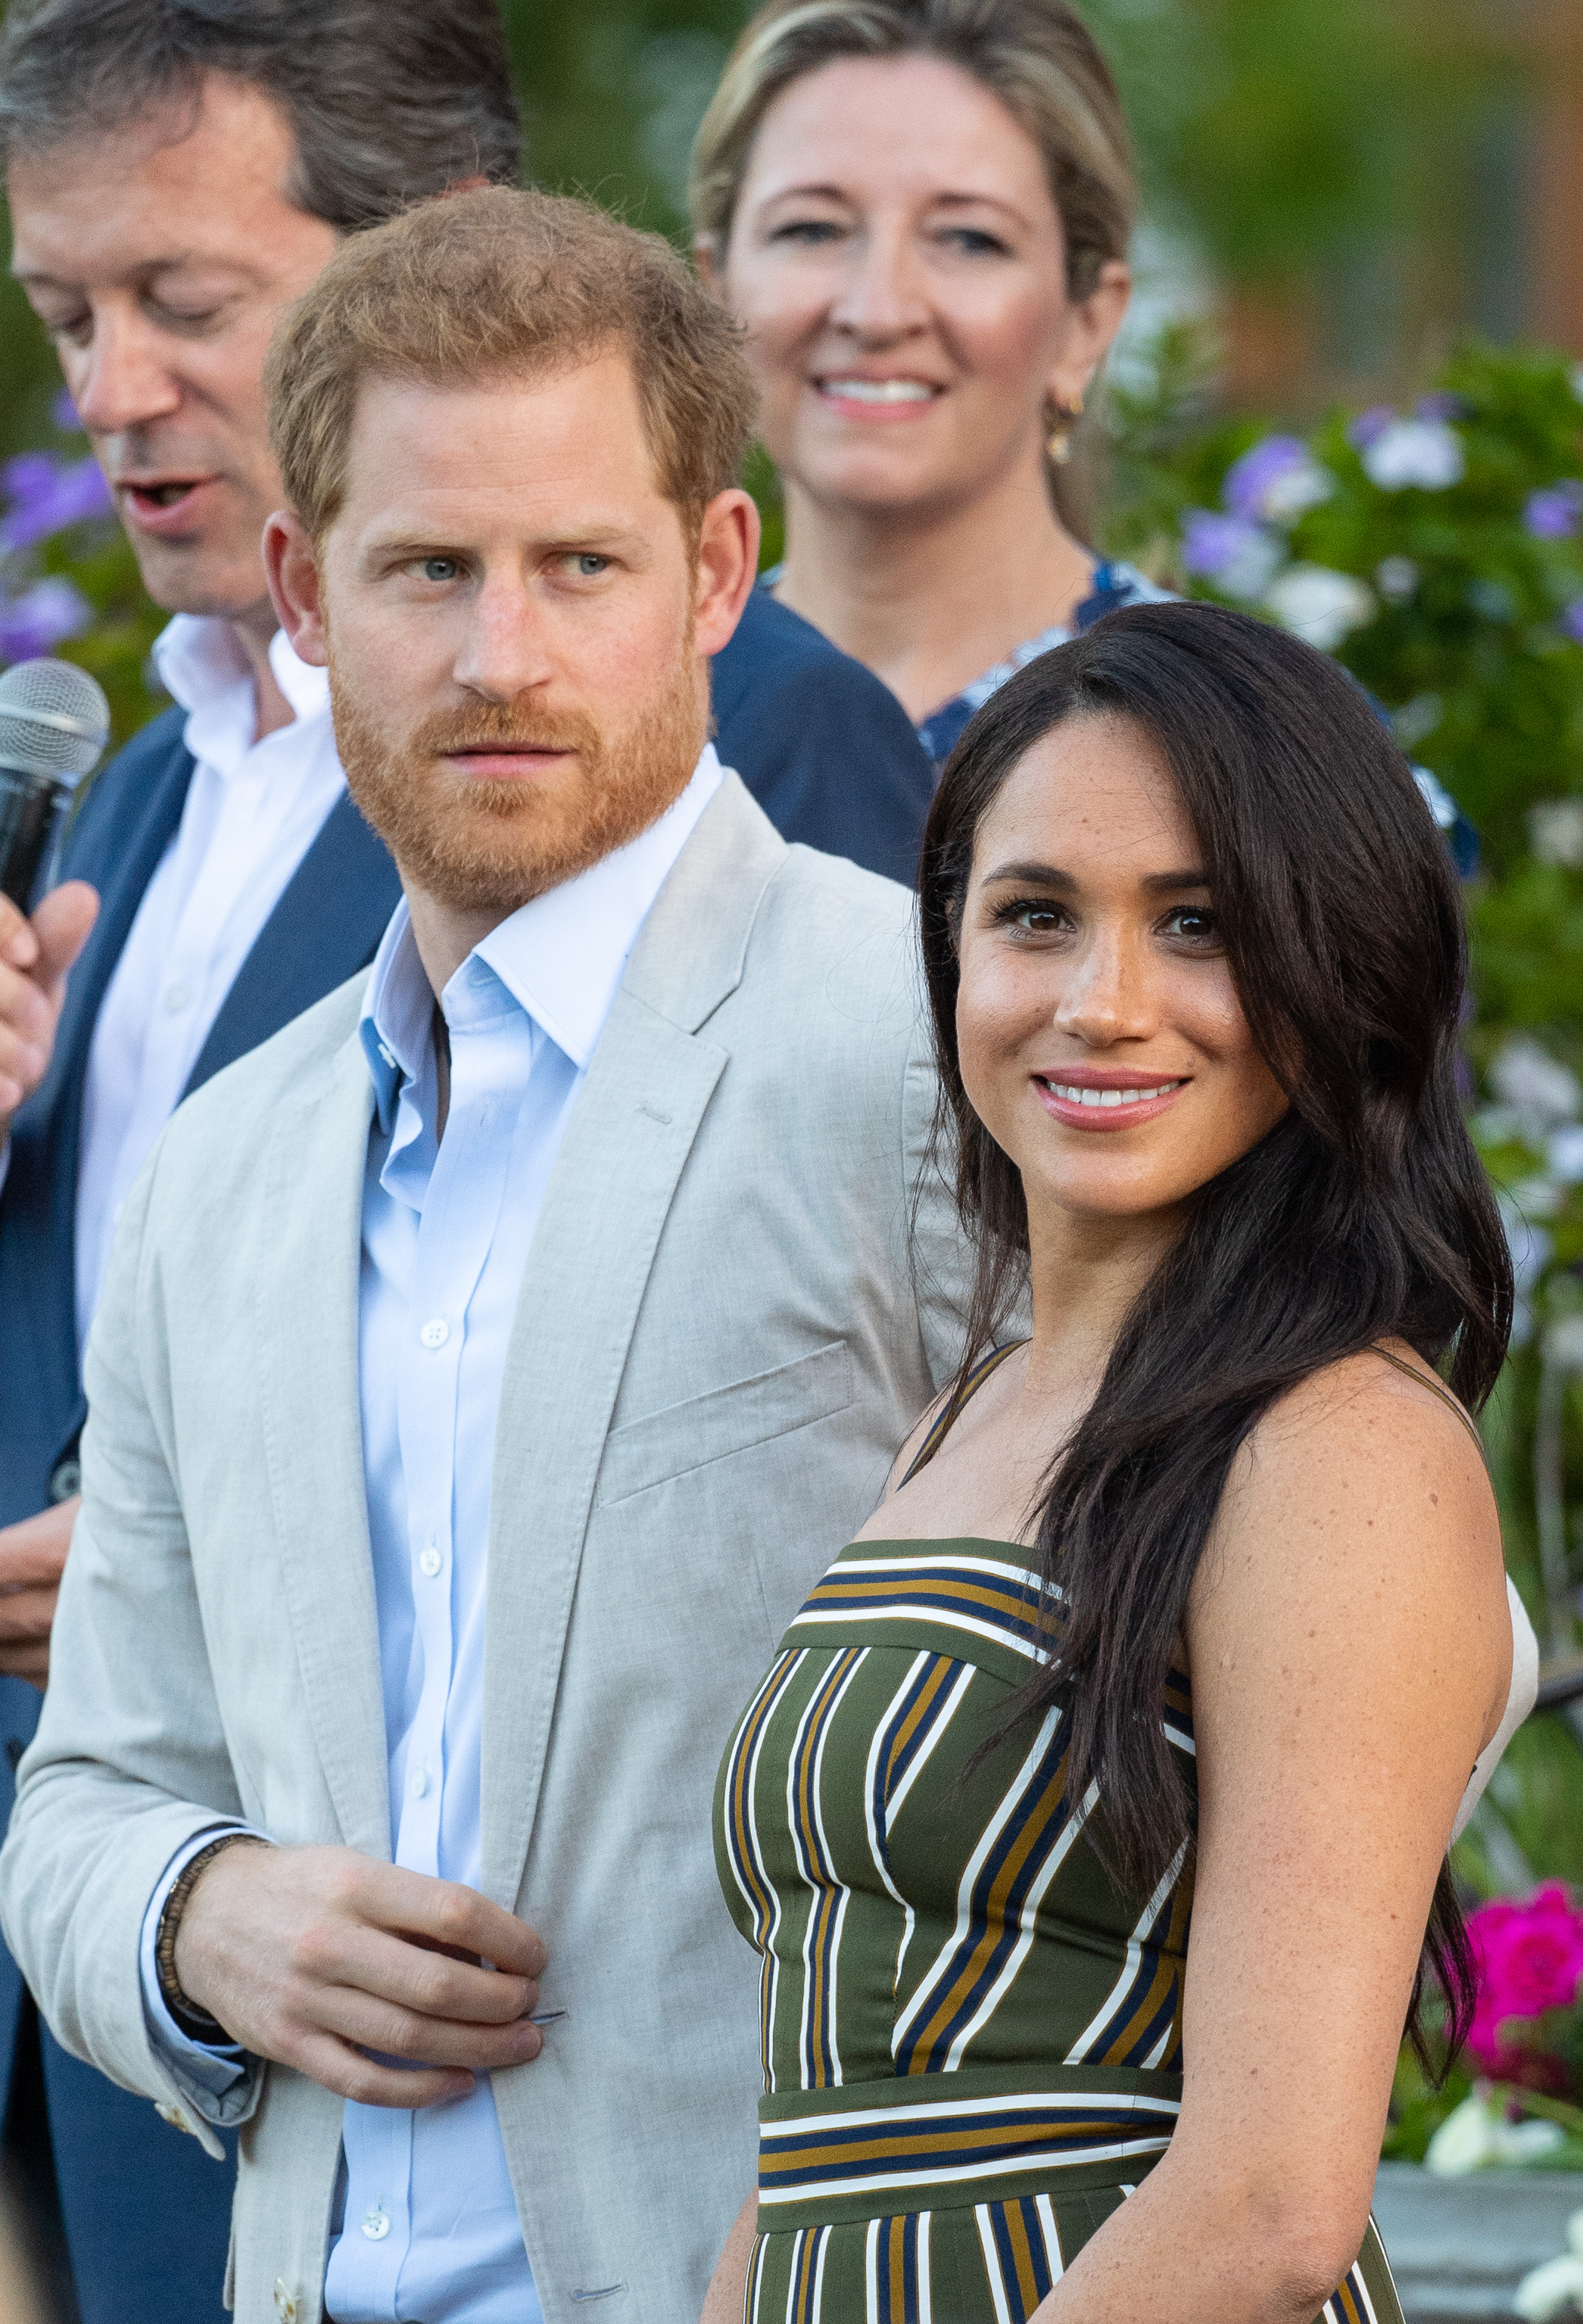 meghan harry attend youth reception meghan s mirror 2